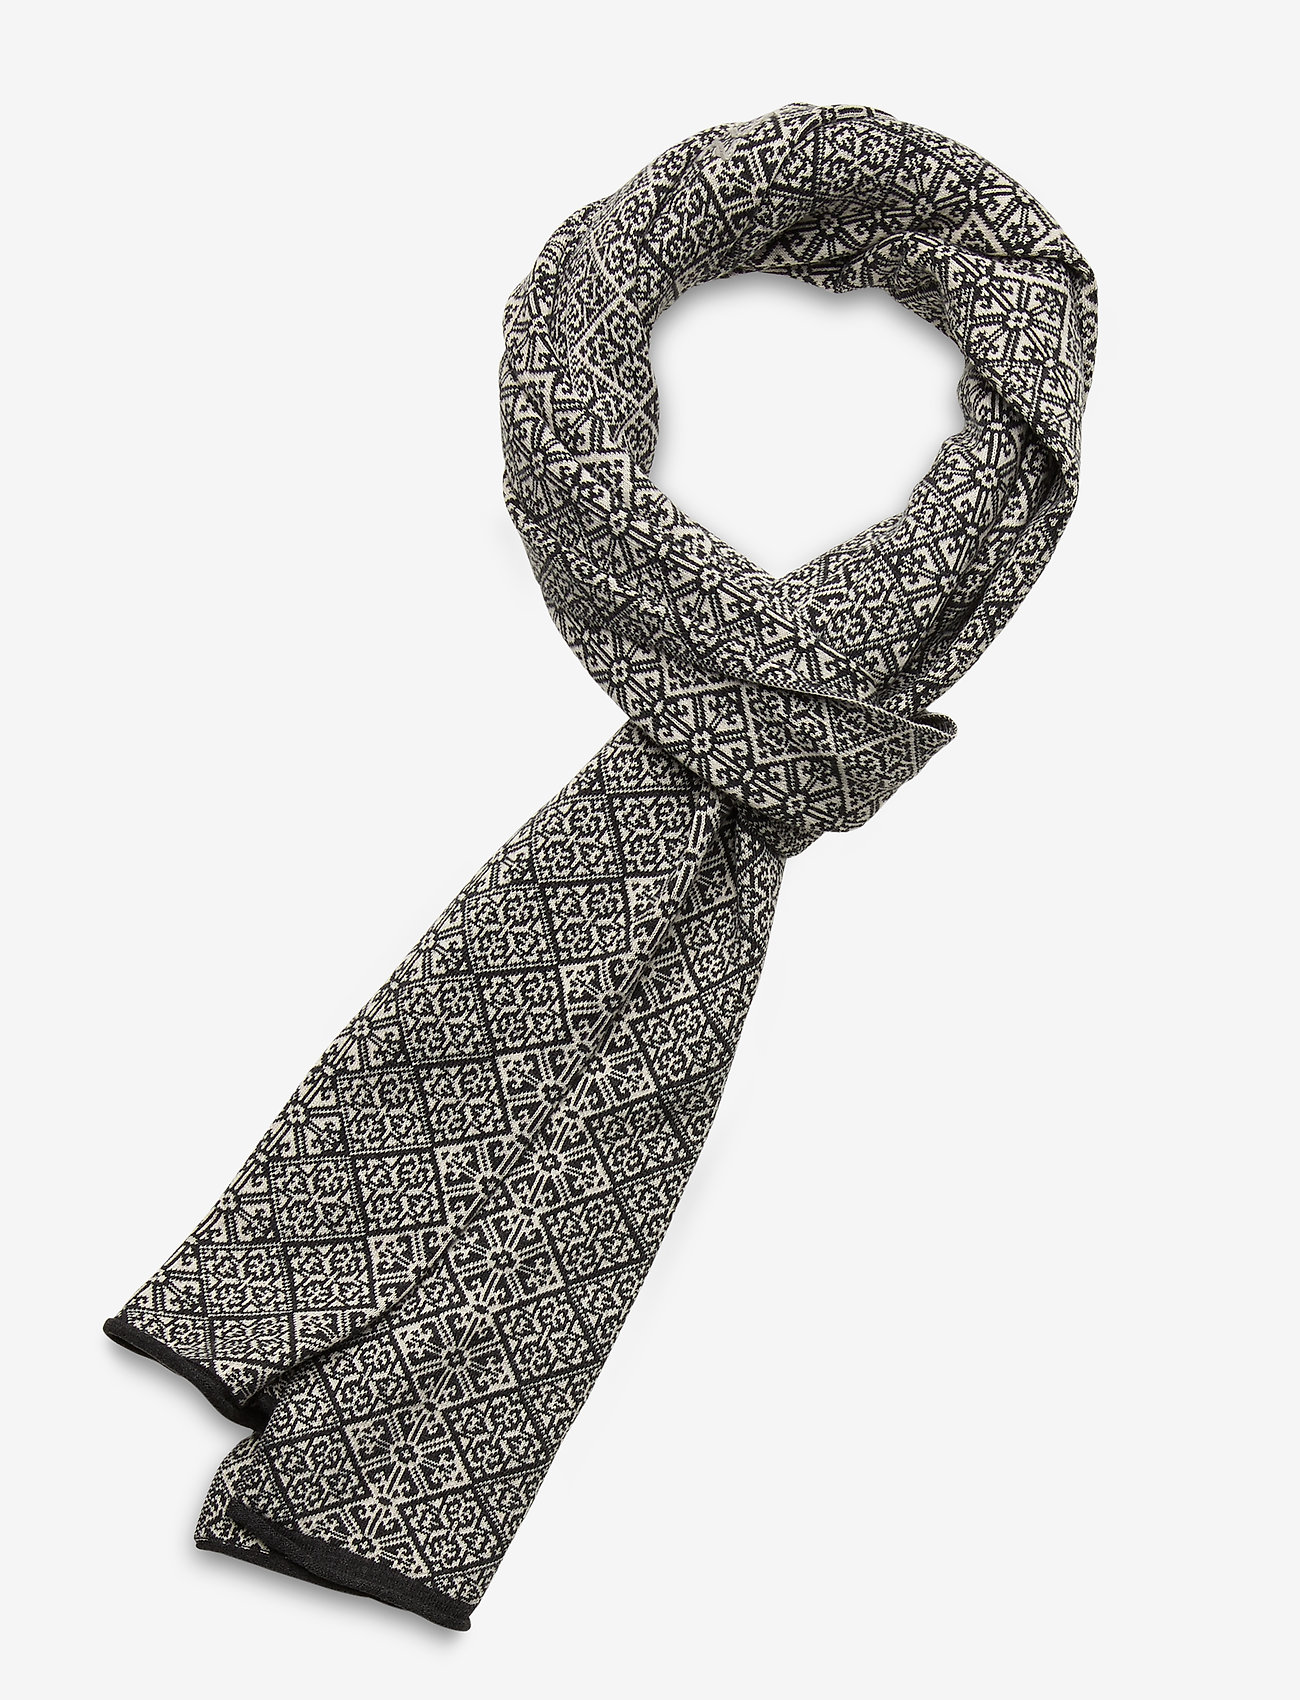 Luna Scarf (Almost Black) (89 €) - ODD MOLLY fugmD